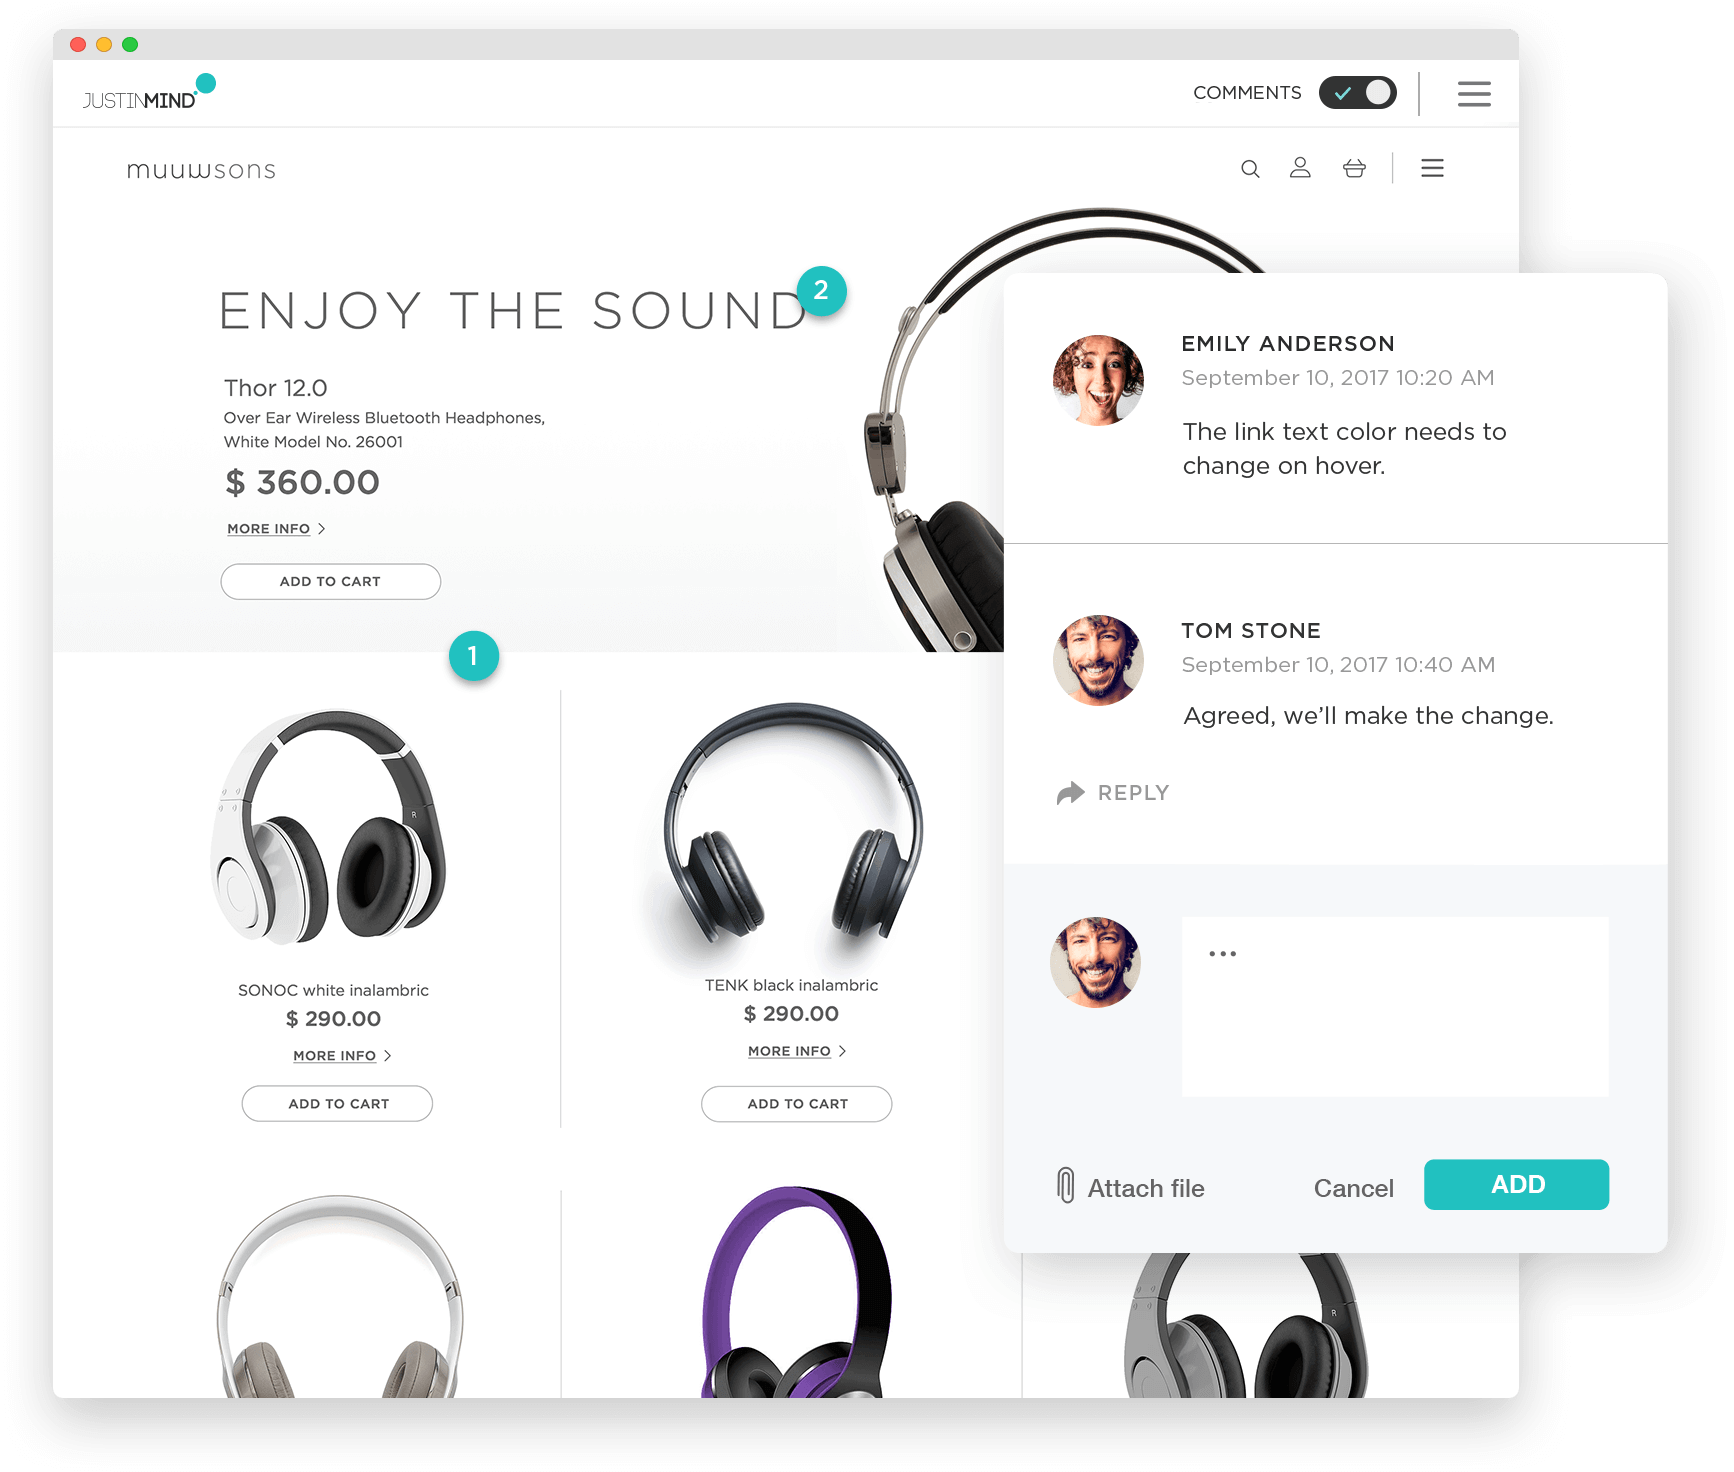 Add comments to app prototypes